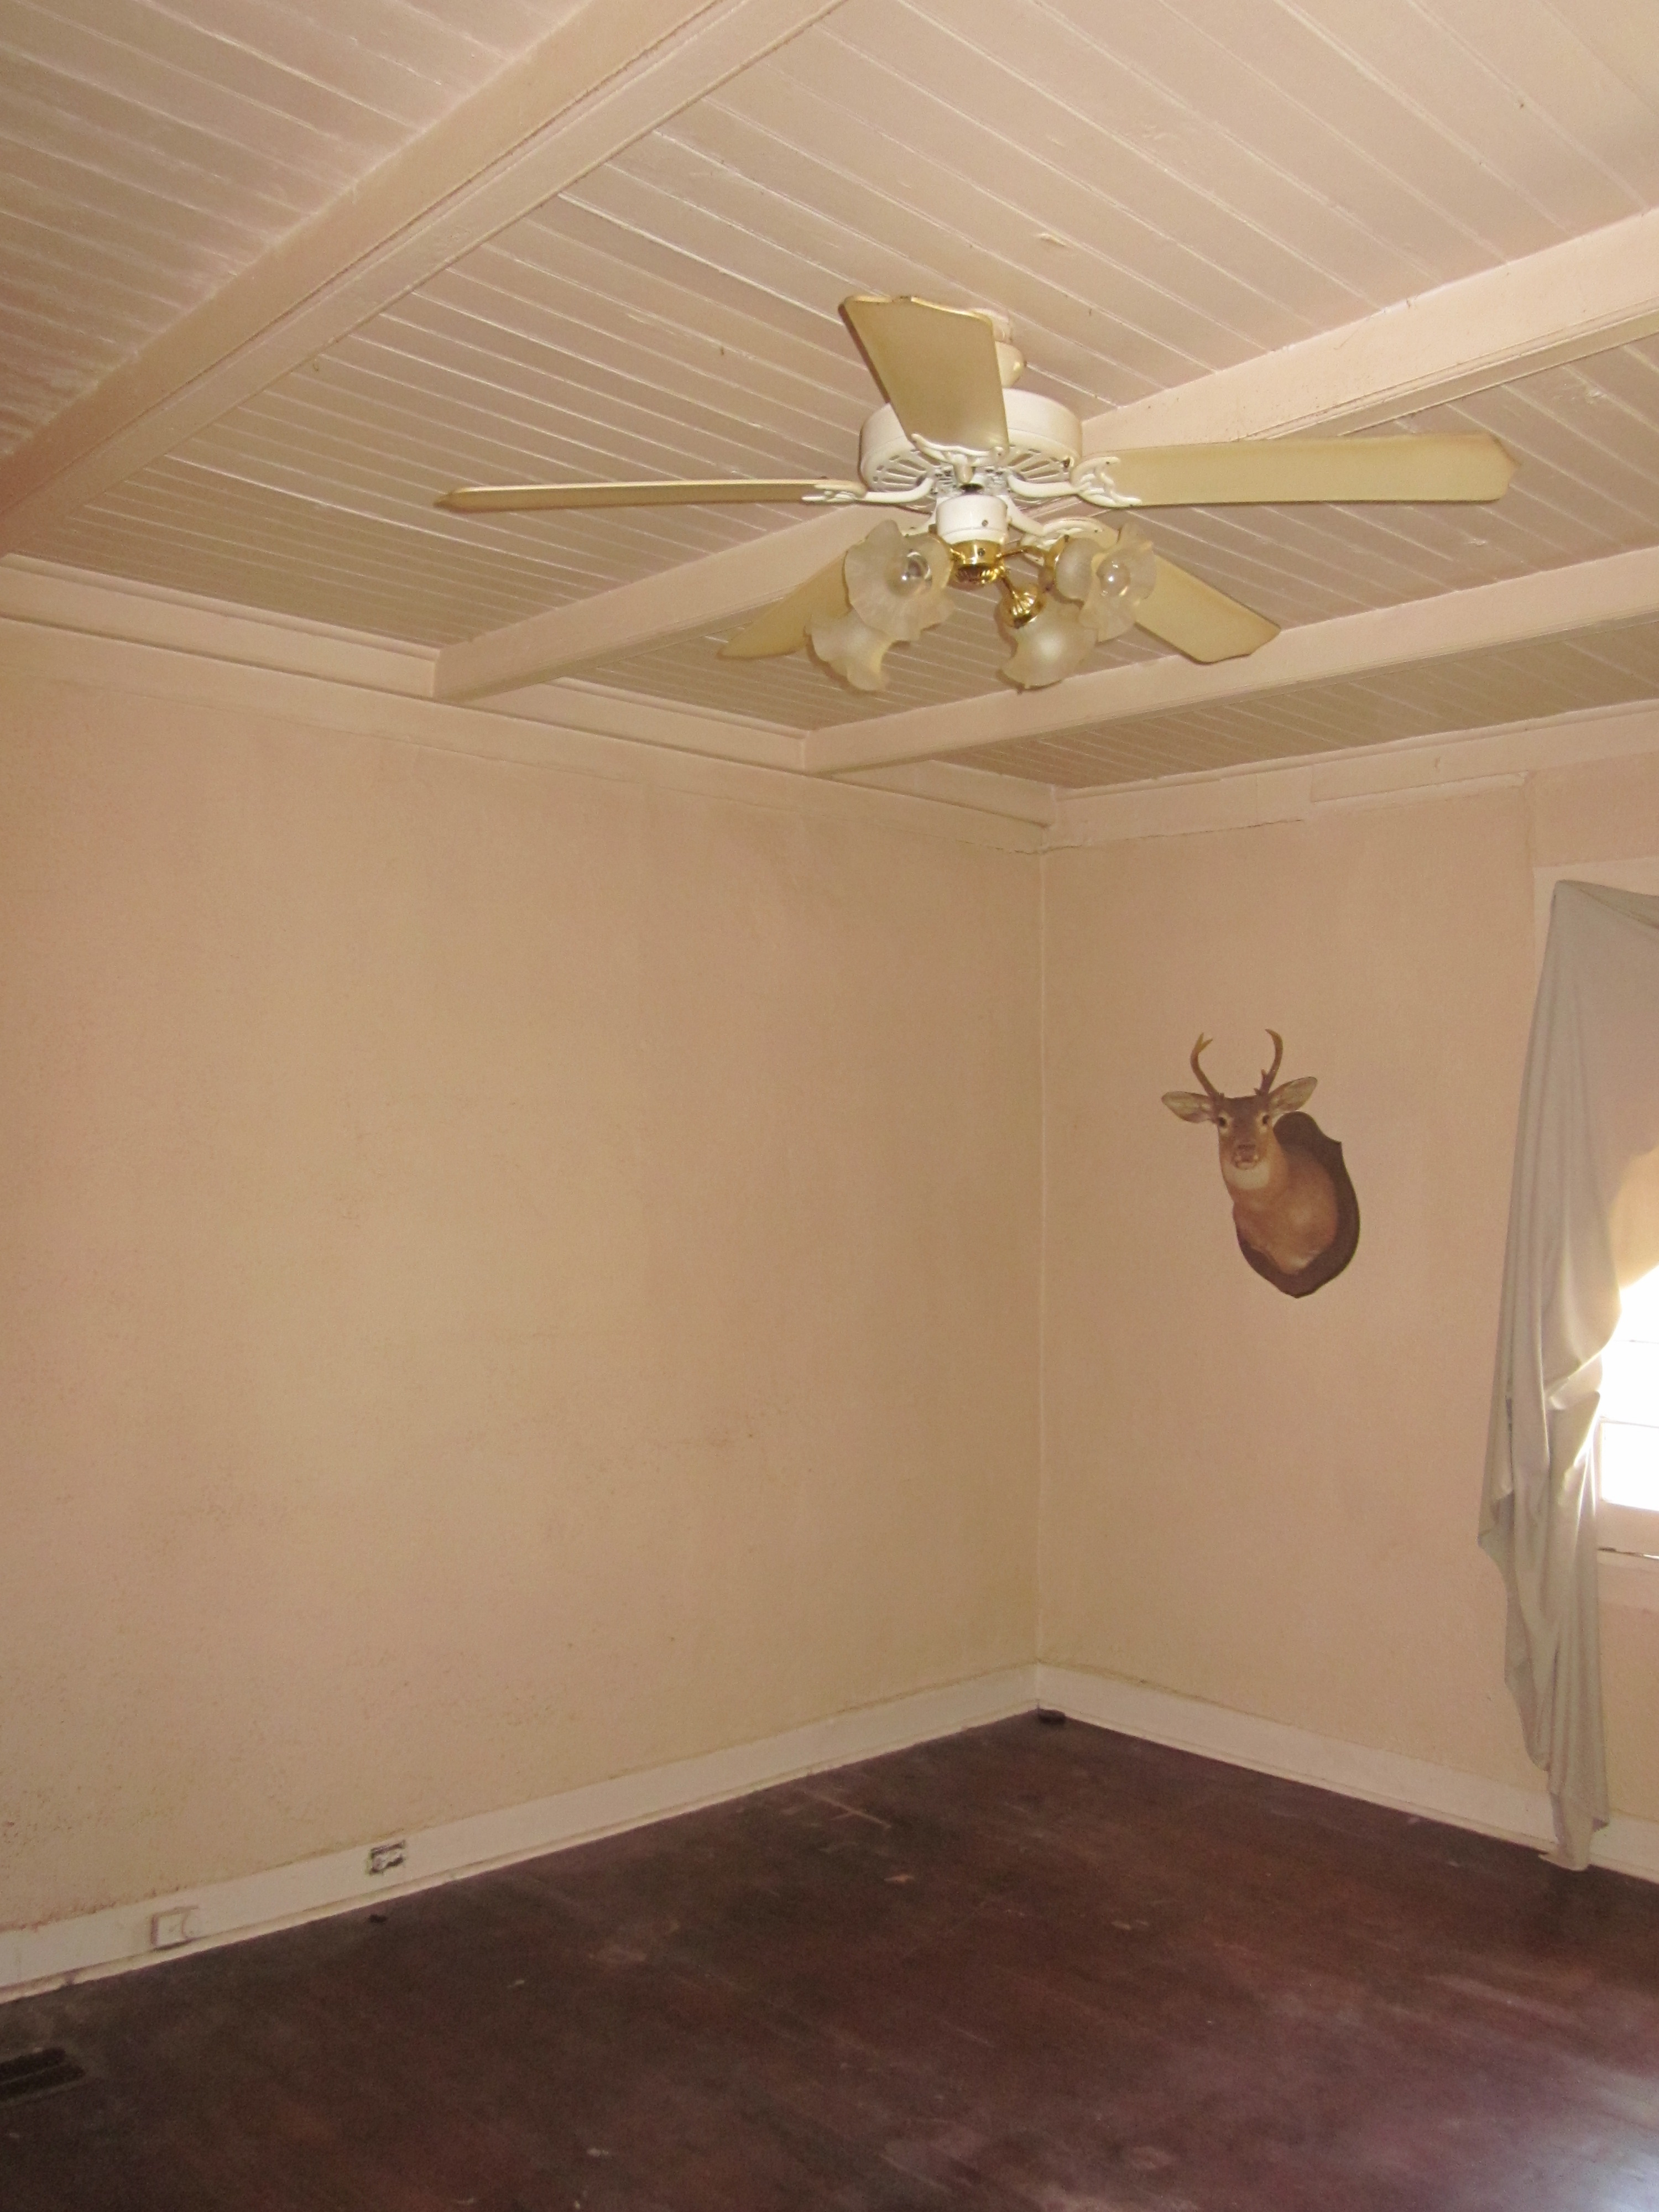 file nmp 1780s house interior mbr ceiling corner jpg